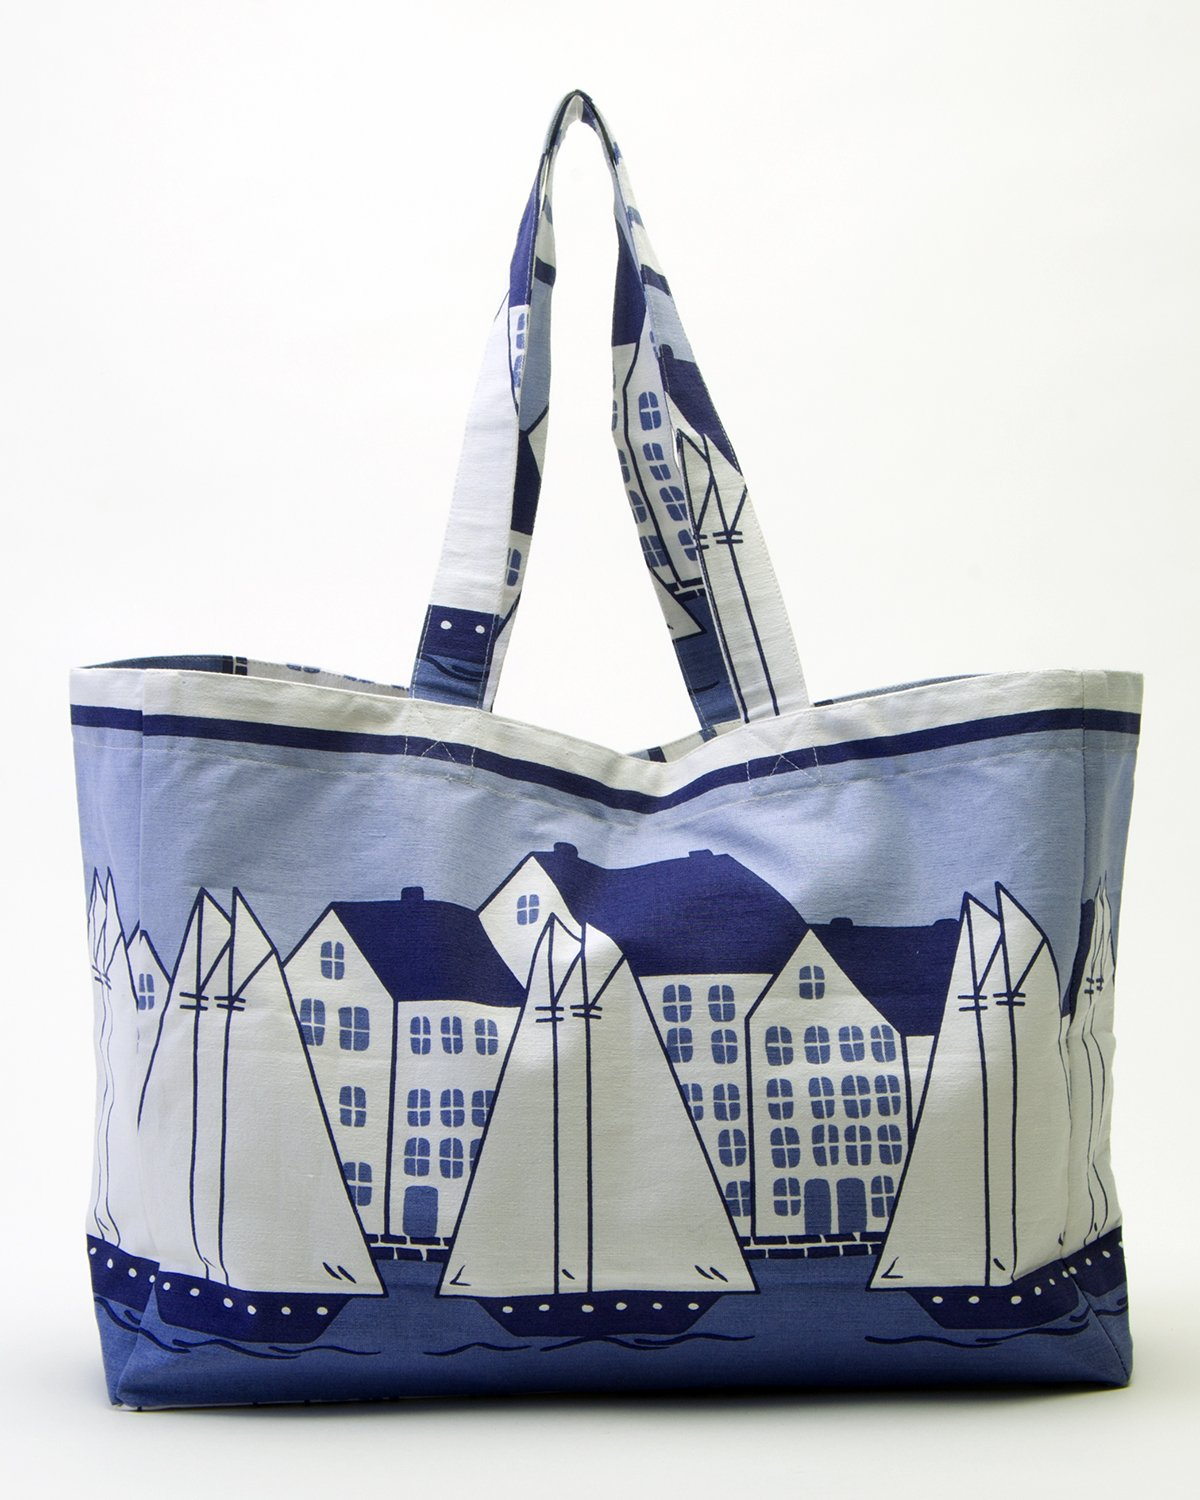 Everyday machine washable totes by SHARD ~ Classic Coastal Village plus several other prints available.